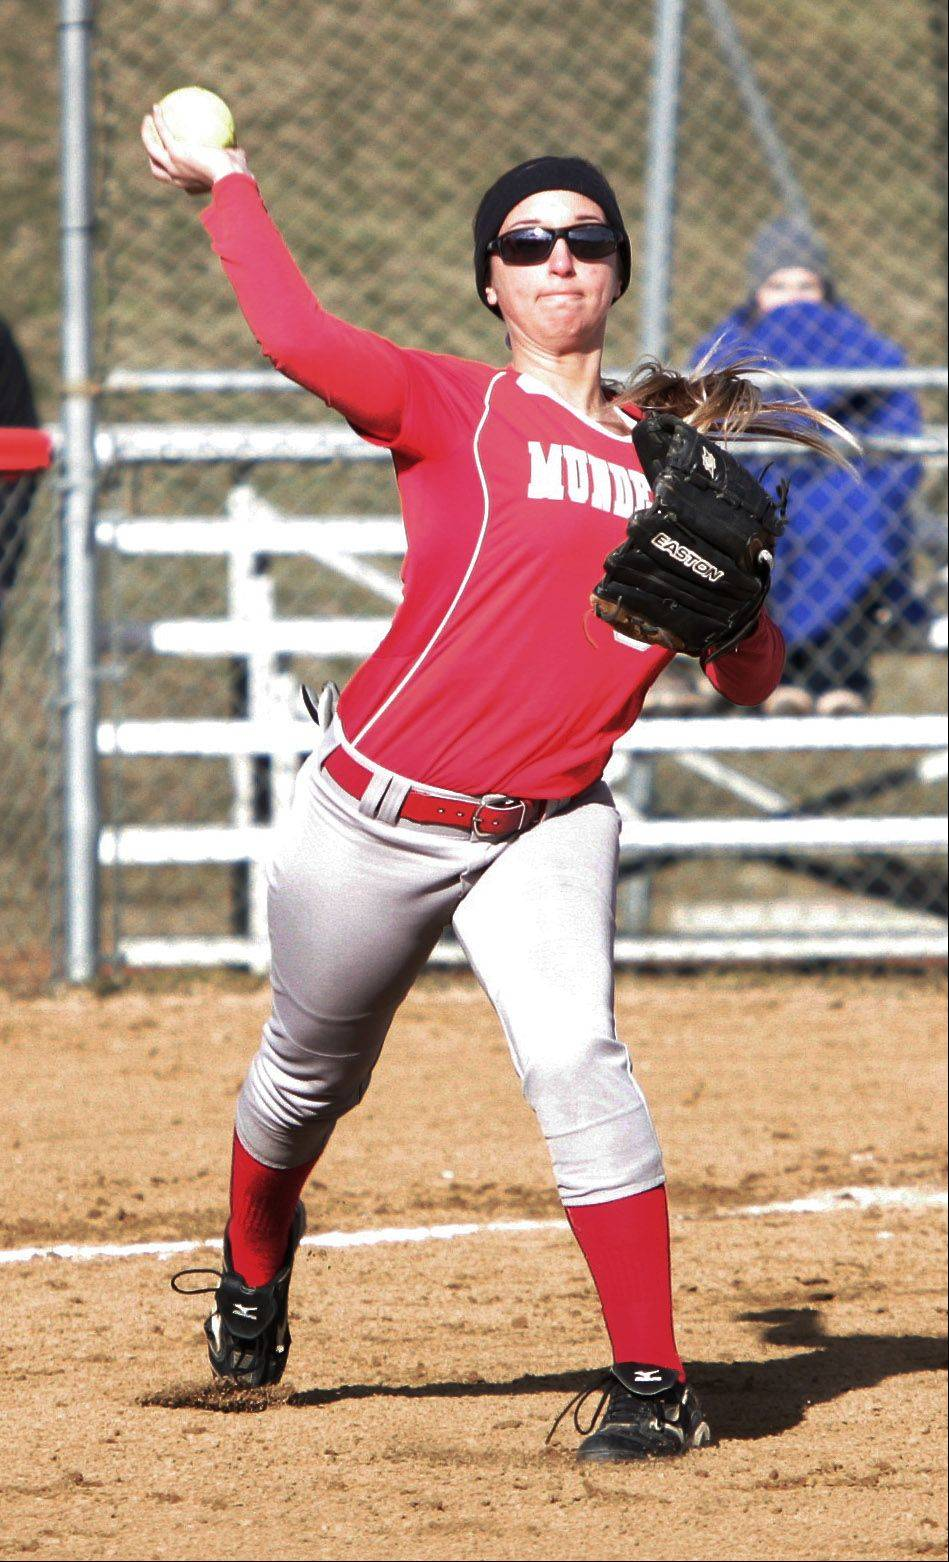 Mundelein third baseman Andrea Funteas throws to first base in the first inning Tuesday.